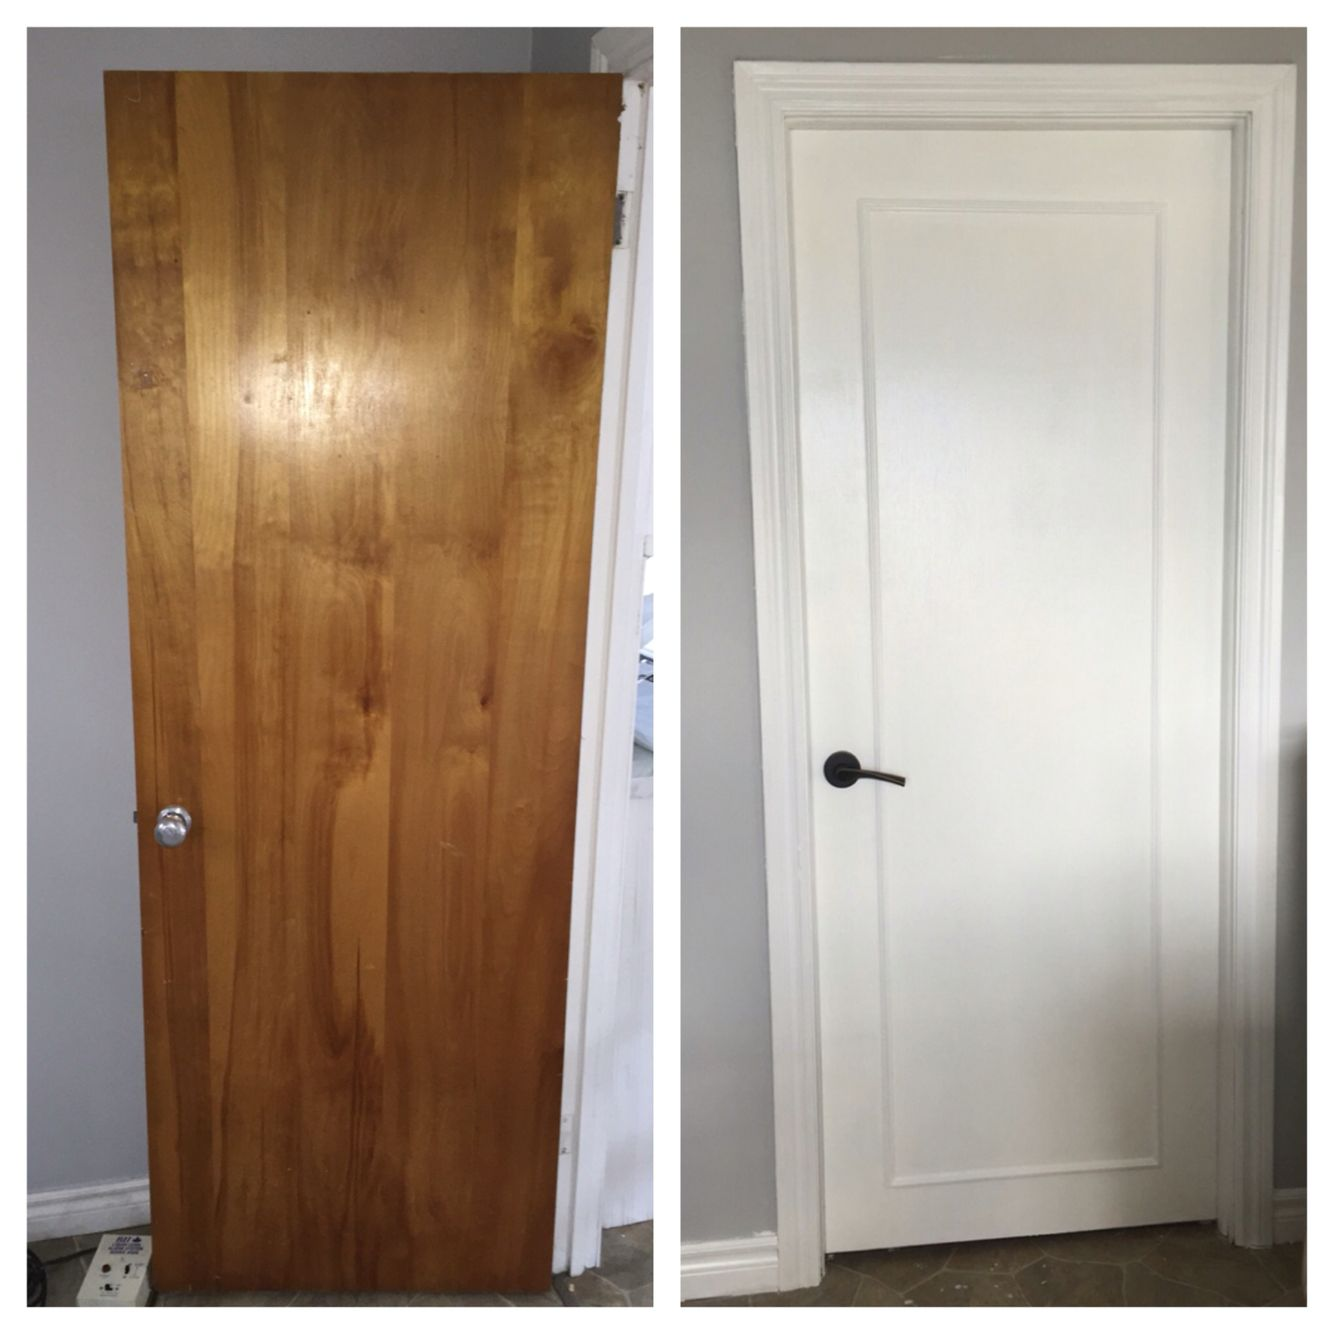 Relatively Updated old wood doors to a modern look with wood trim, primer  RT06